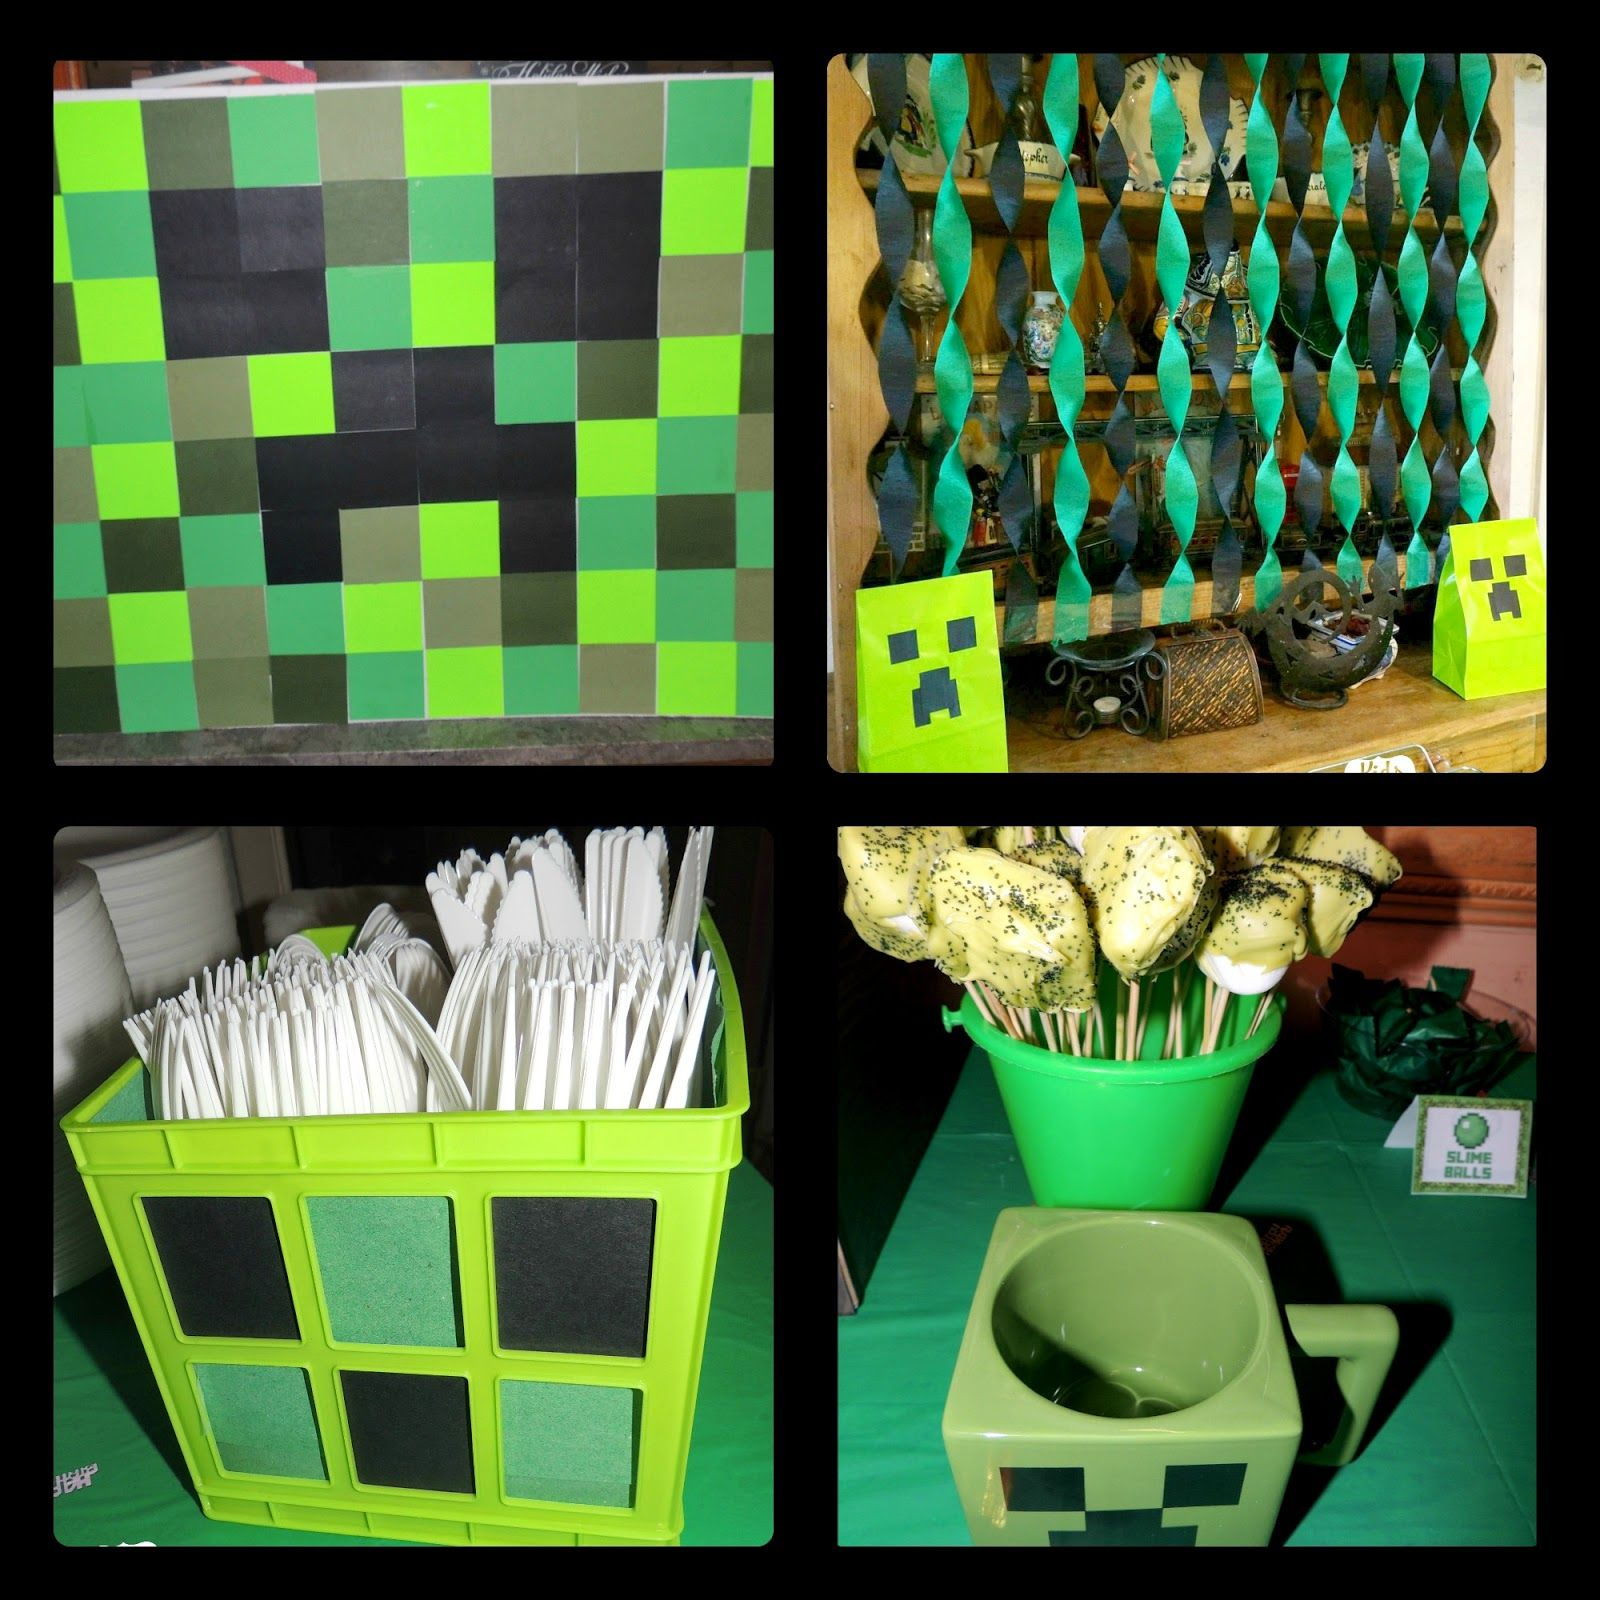 Kids and deals a minecraft birthday party decoration for Decoration ideas